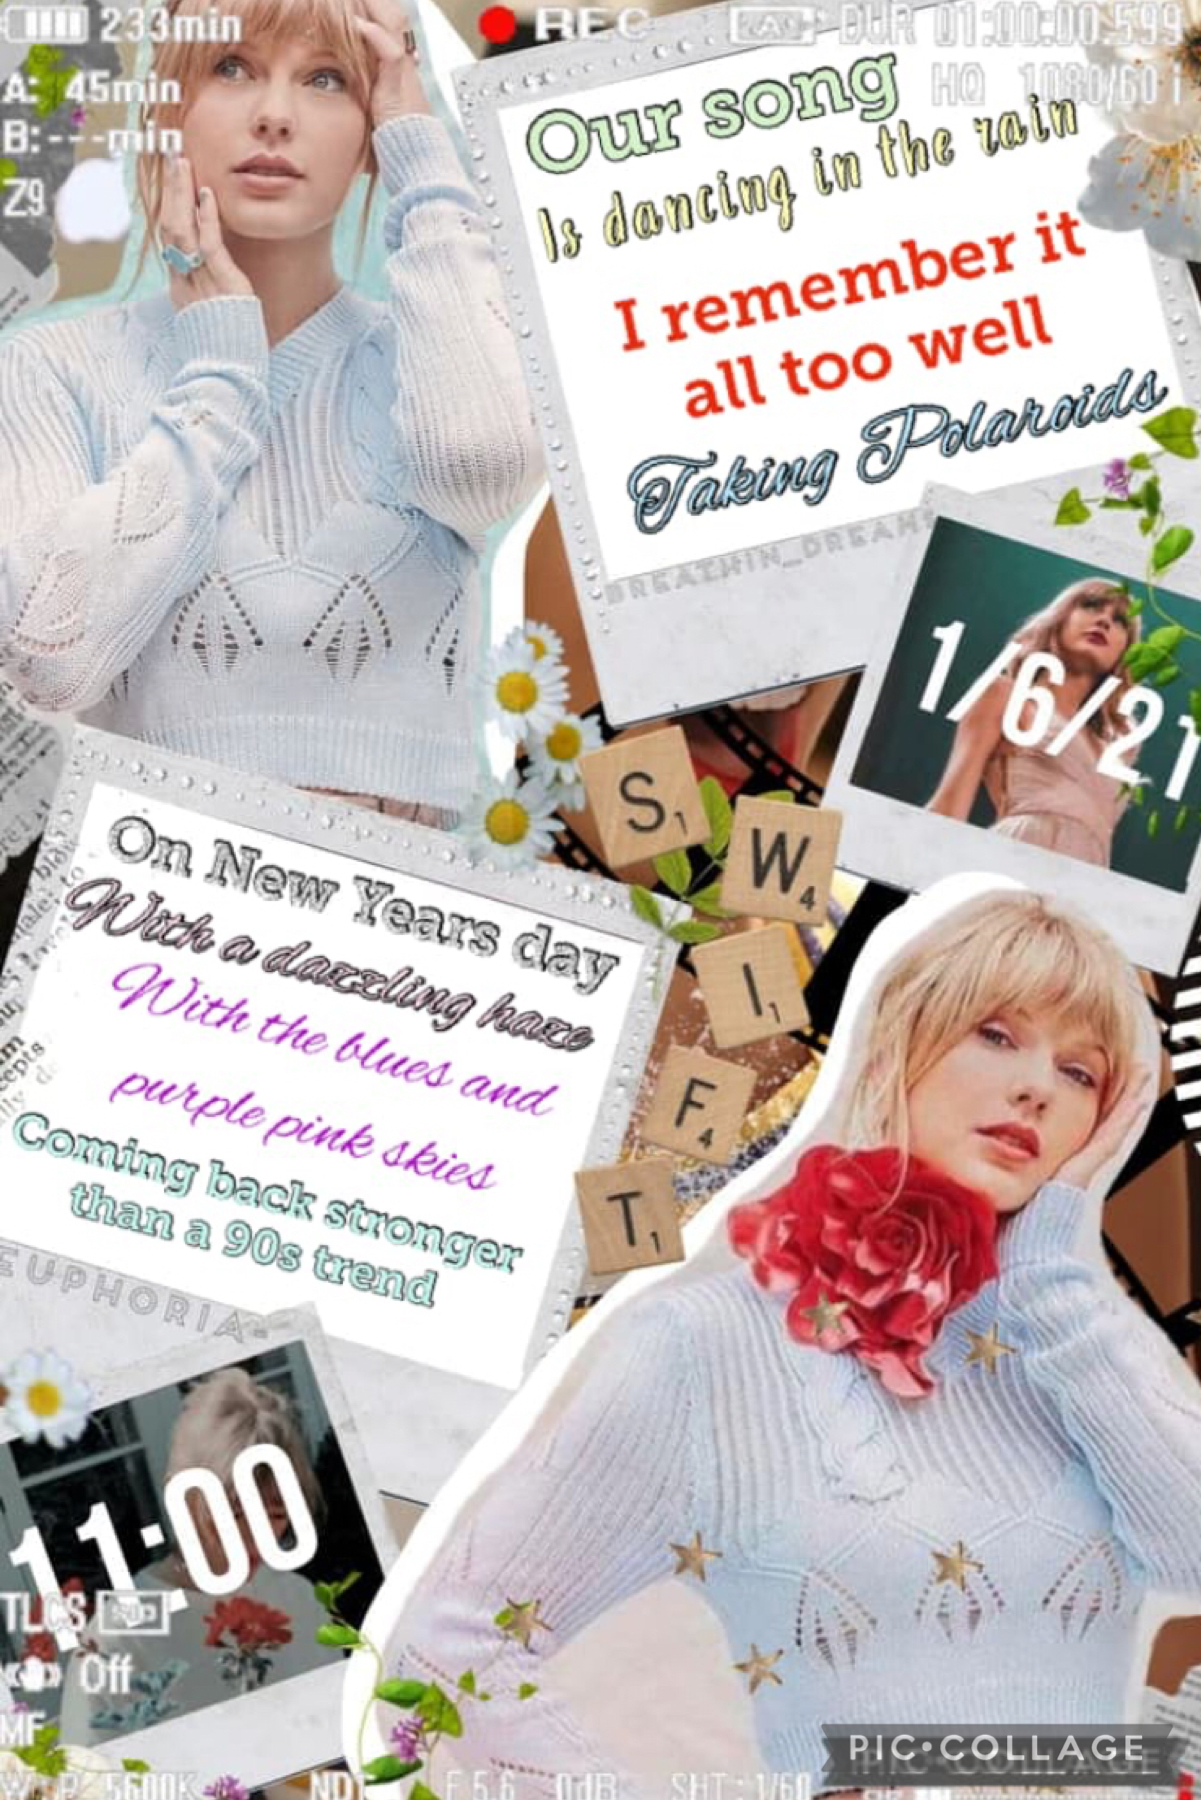 Taylor Swift collage and collab with Euphoria